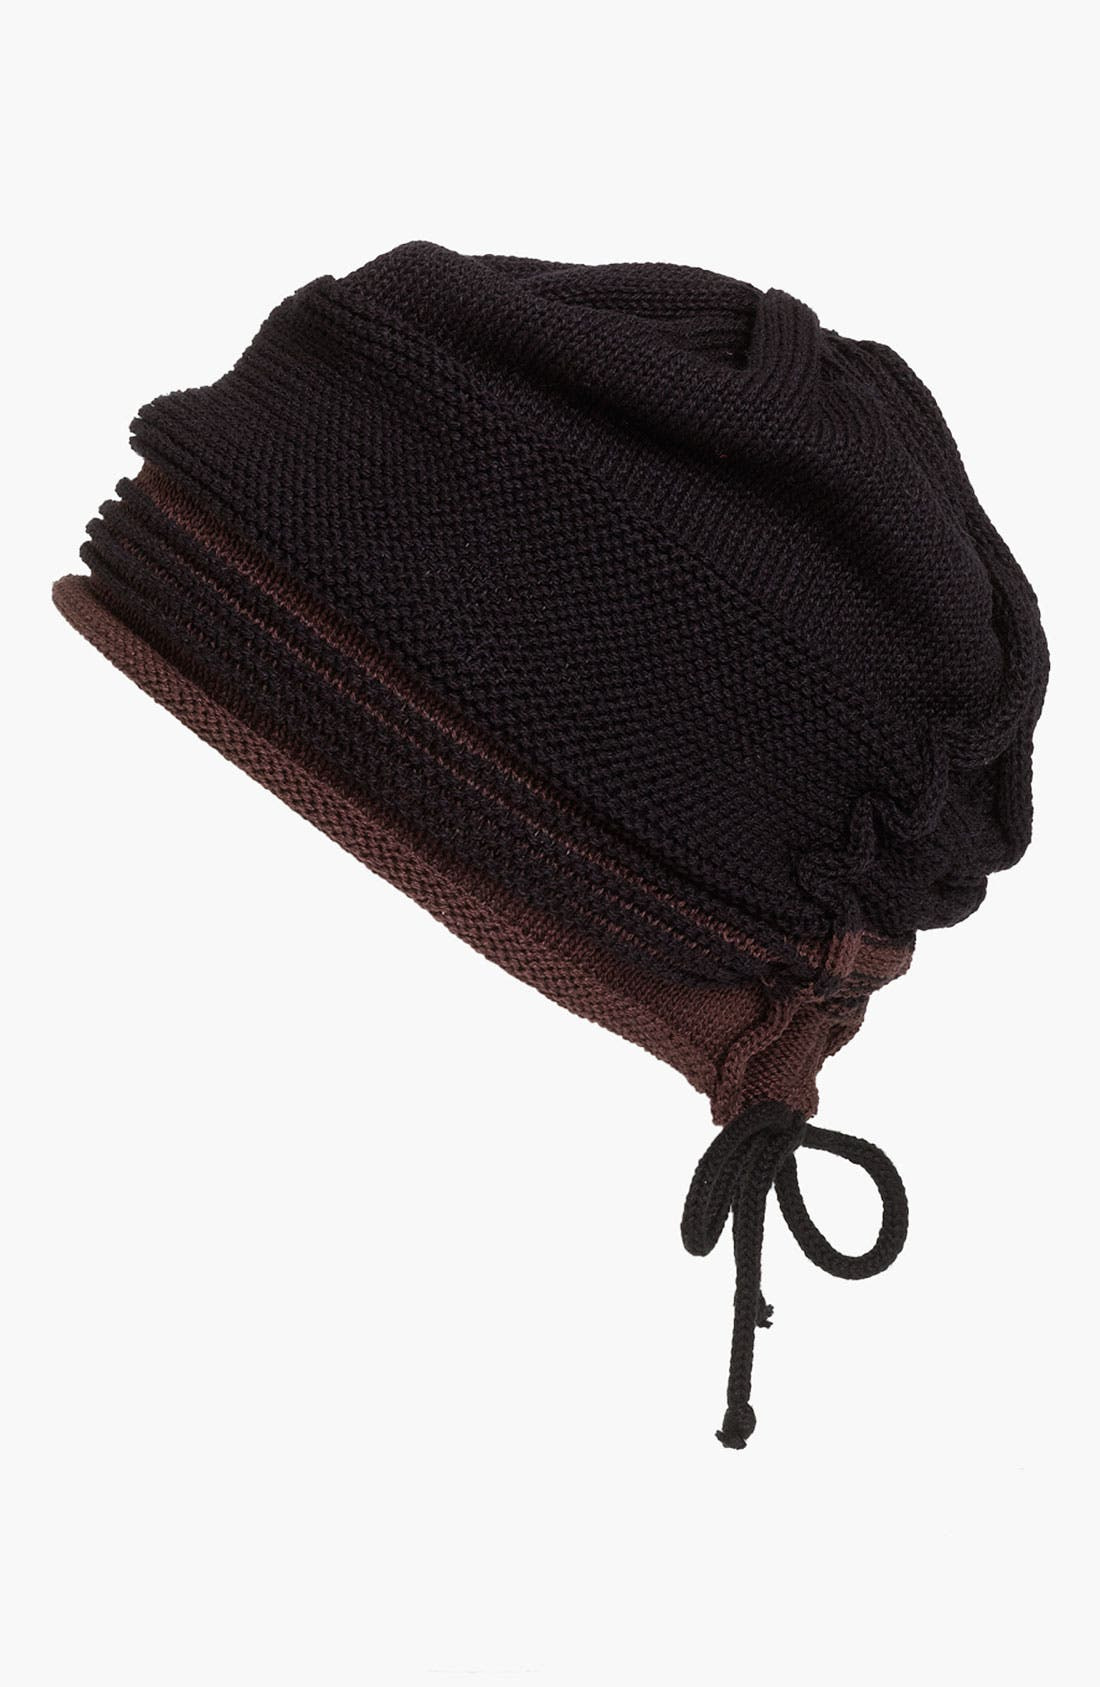 Main Image - Cara Cinched Beanie